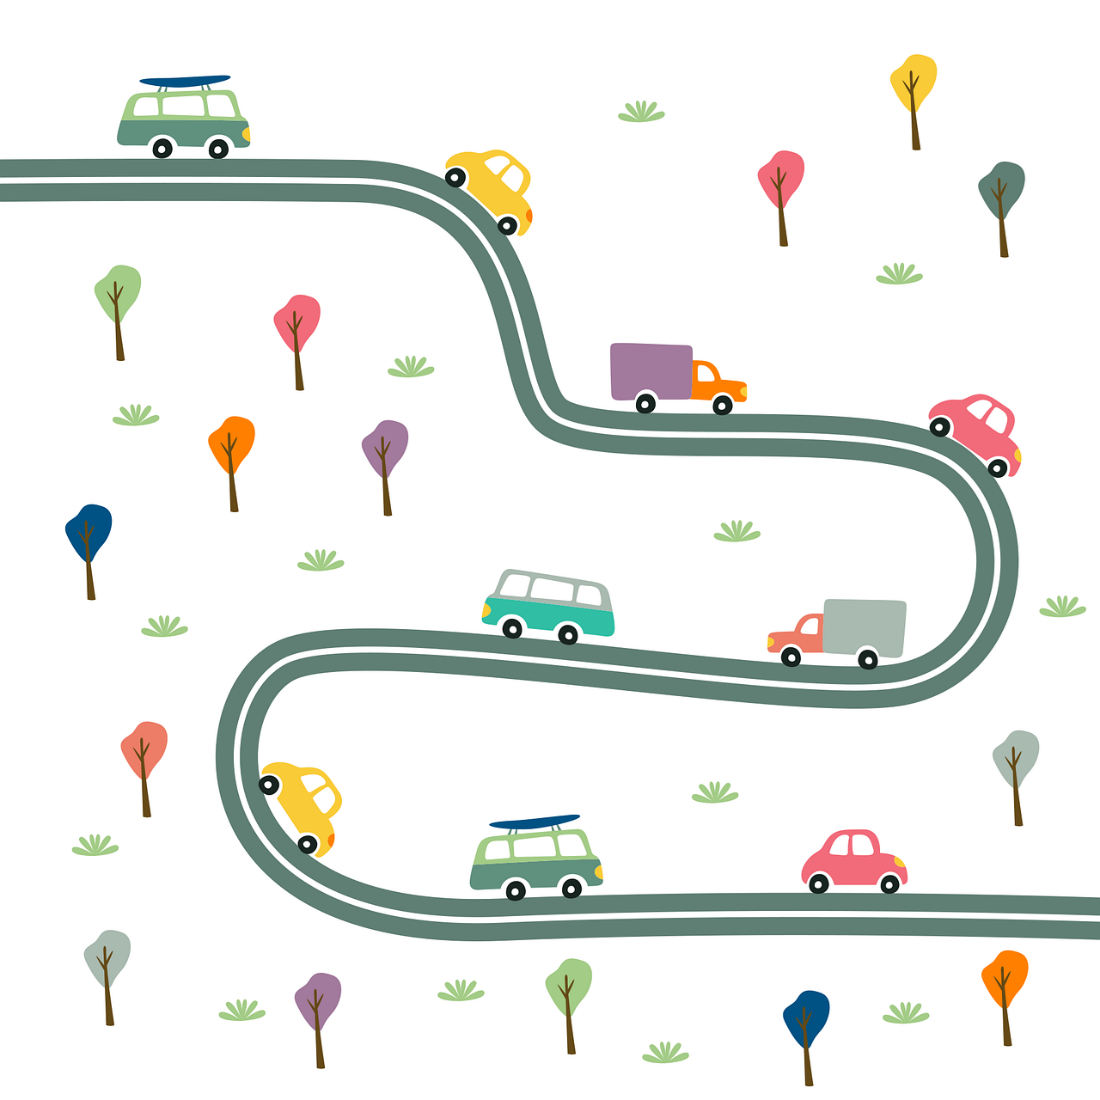 An image that depicts vehicles driving on a cartoon-like road.